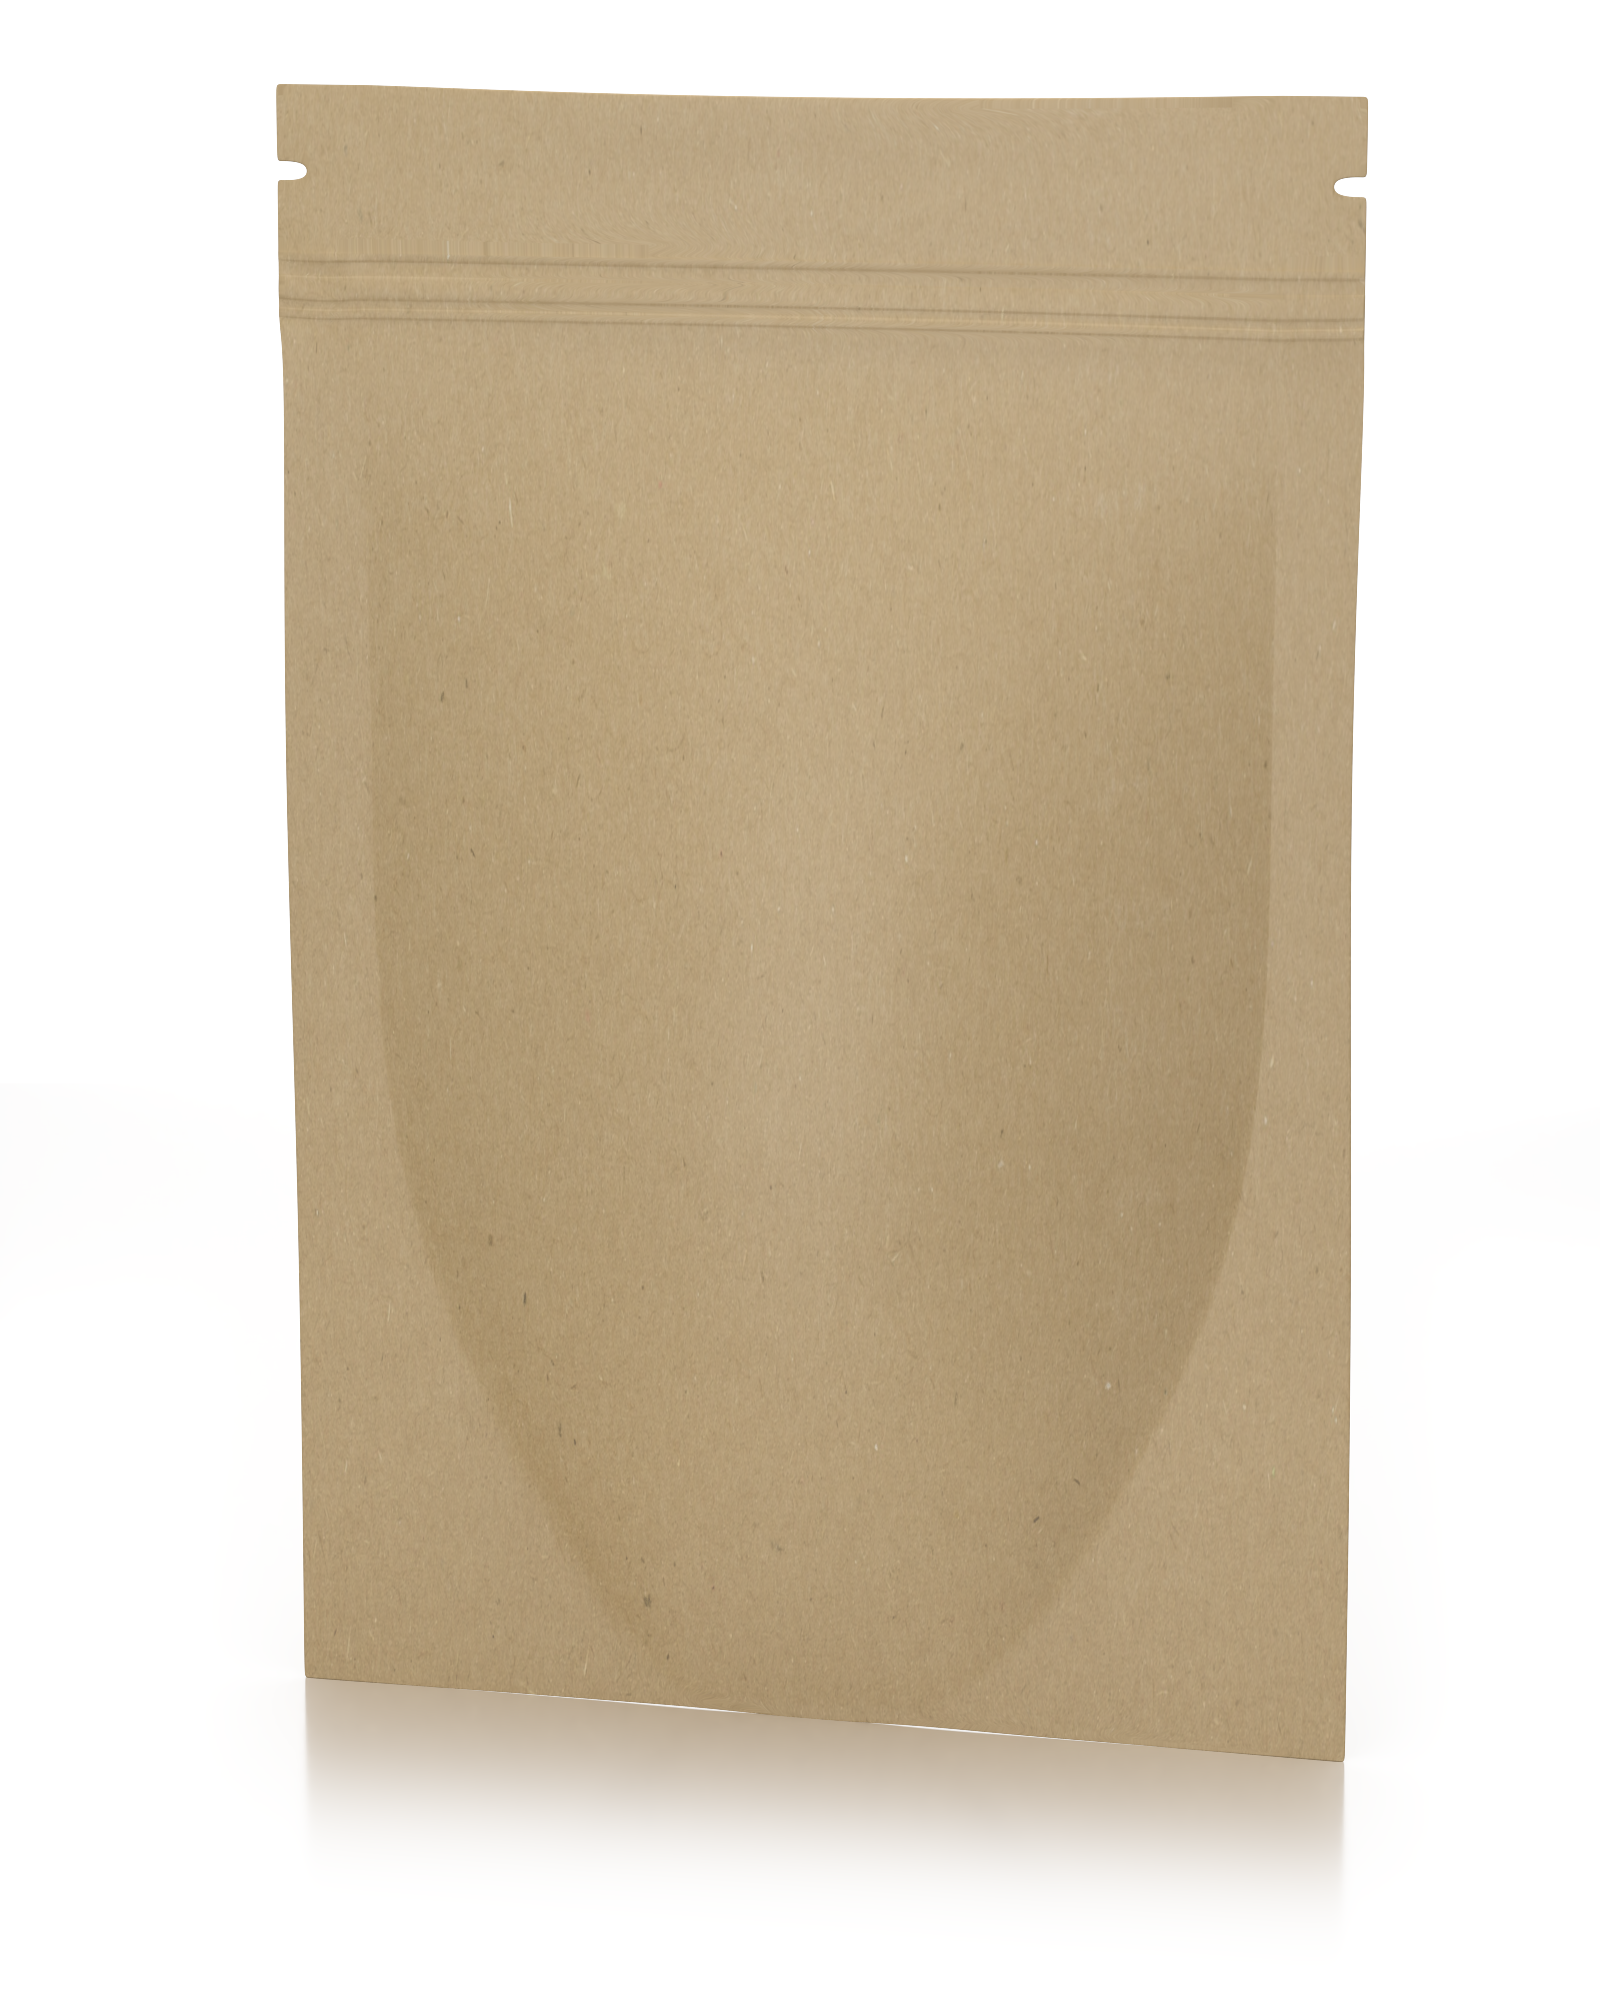 04/ STANDUP POUCH    APPLICATIONS/  Snack foods, baked goods, confectionary, cereals, food supplements, frozen fruits & more.   MATERIALS/  Available in   transparent   ,    metalised    &    kraft paper   bio-laminates. Fully printable with excellent sealing strength.   COMPOSTABILITY/  Certified   Home Compostable   - OK Compost